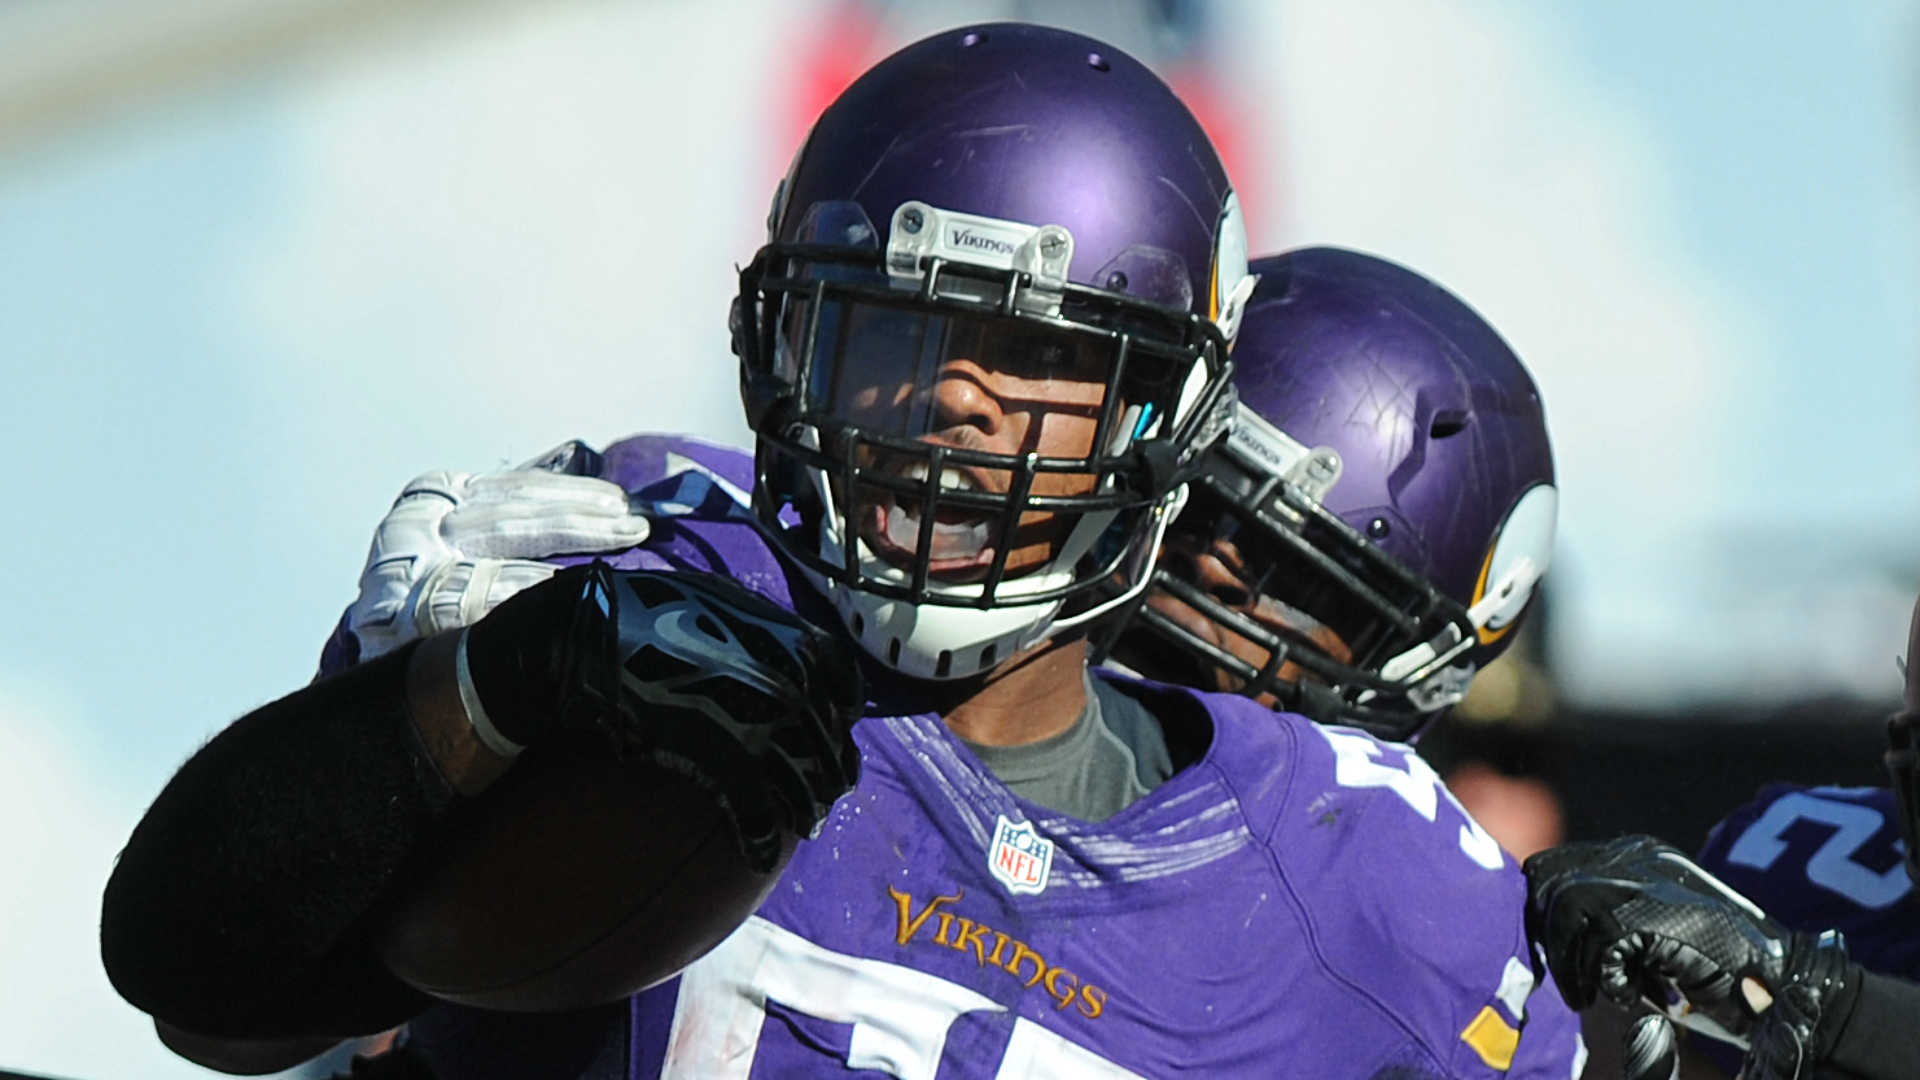 Vikings linebackers tweet takedown of NFL's statement on social justice: 'Vague answers do nothing' 1